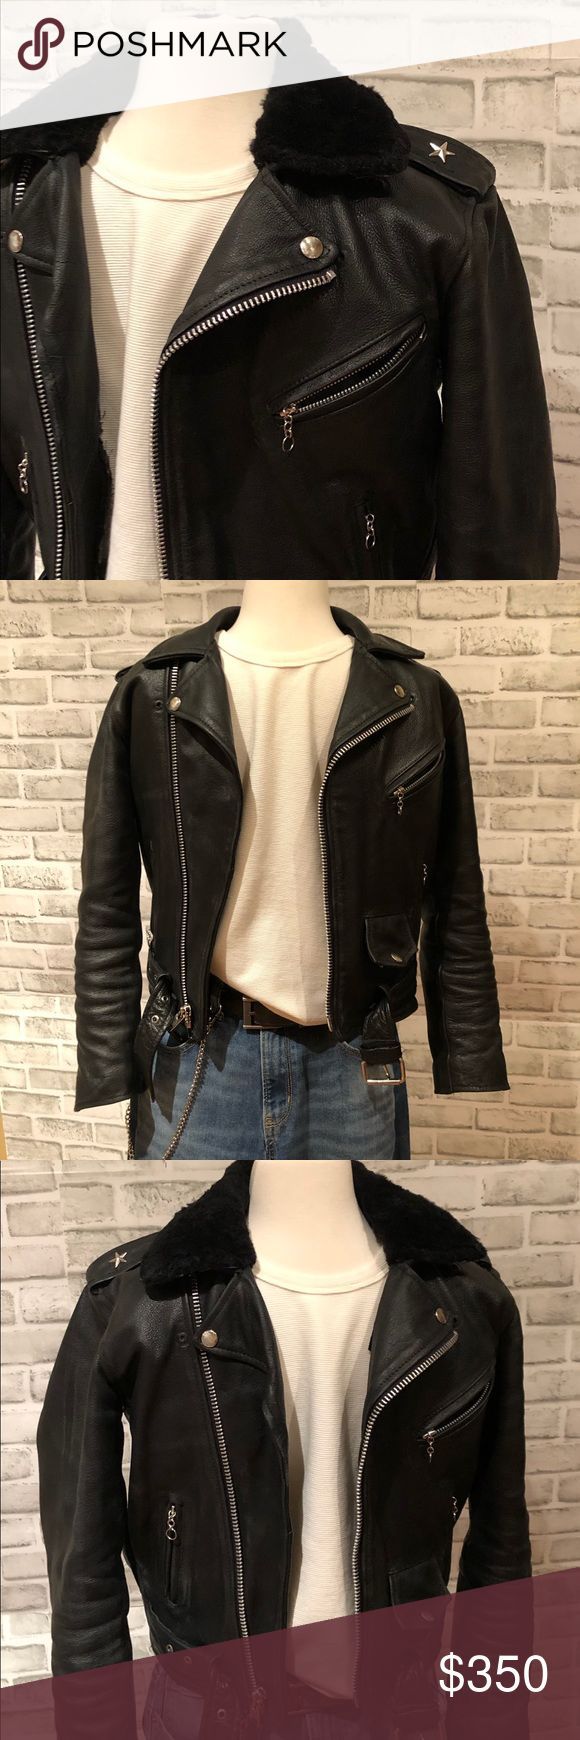 Vintage Leather Motorcycle Jacket Sherpa Collar XS